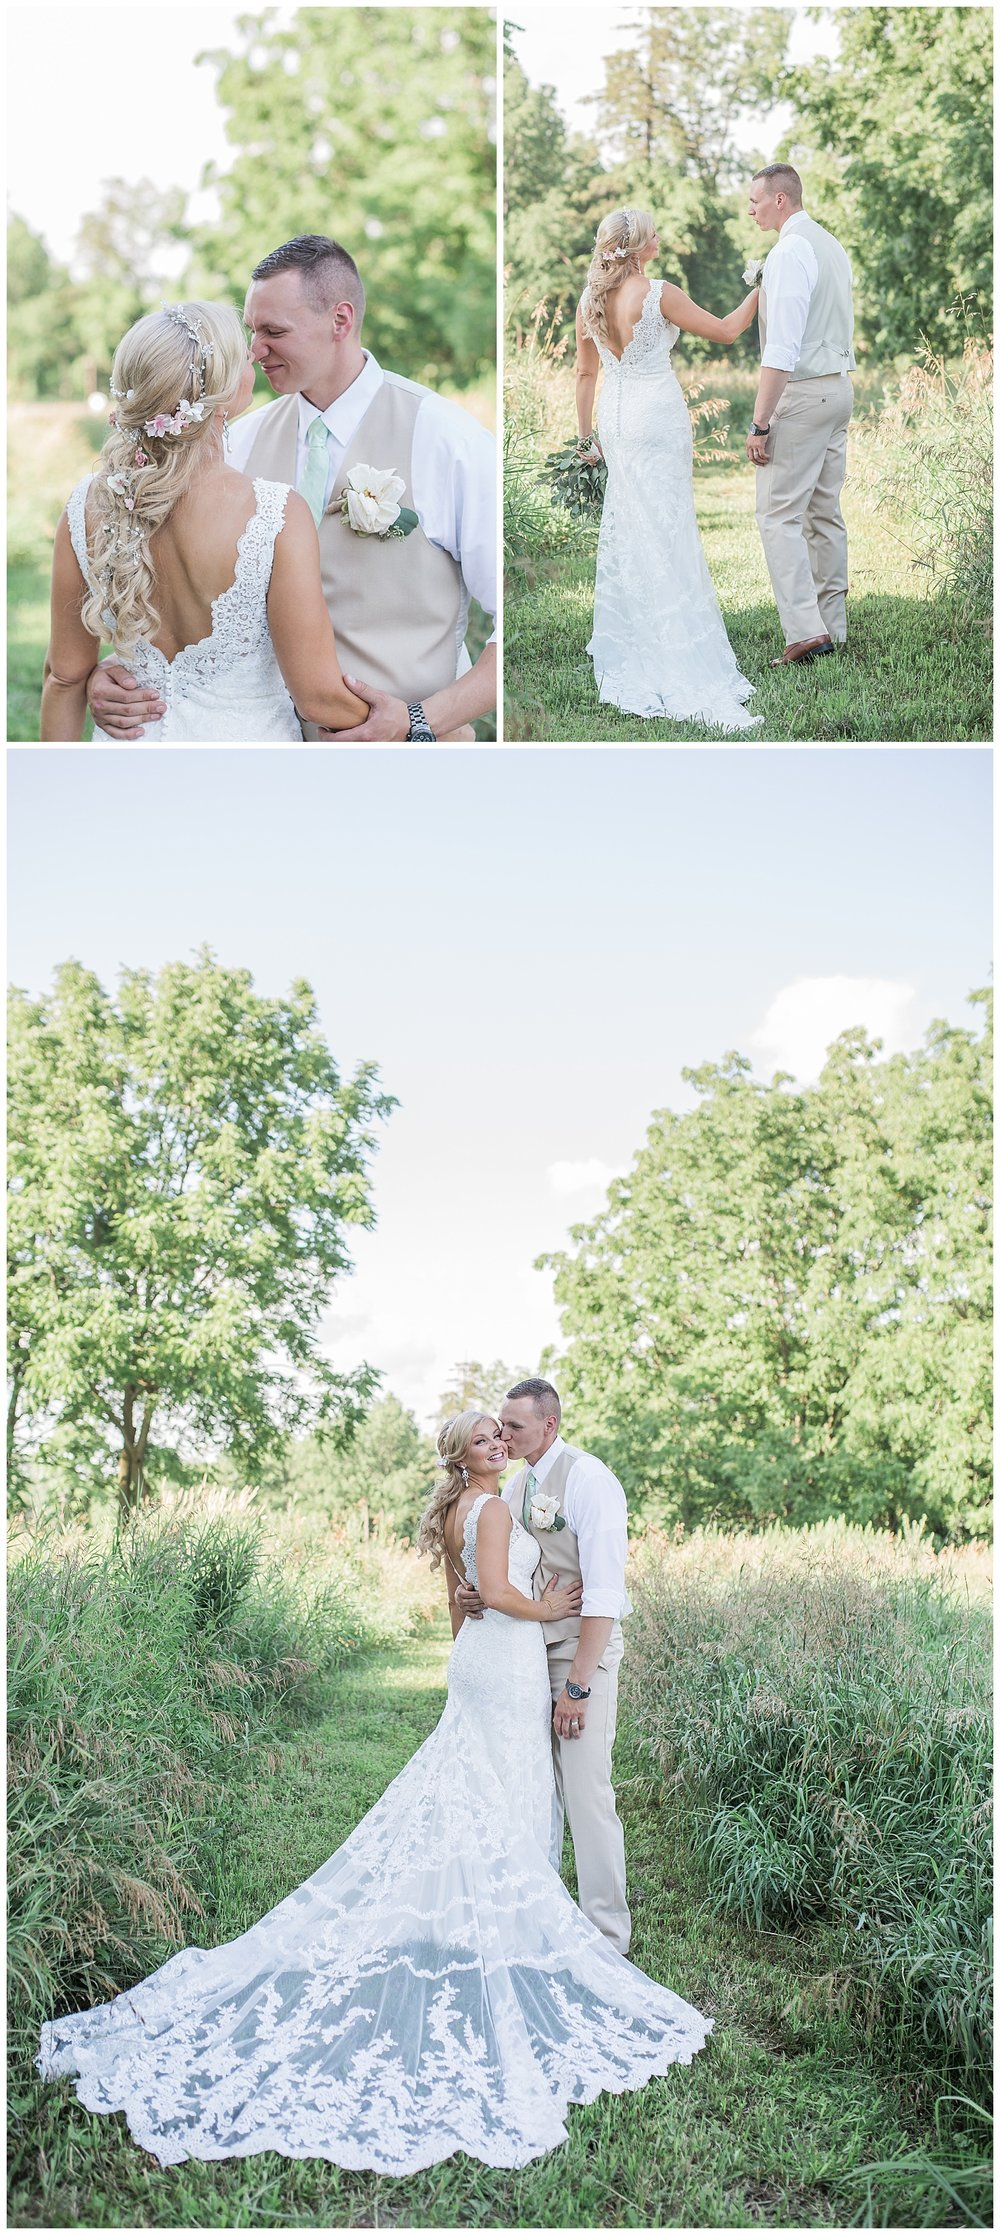 Kellie and Andrew Fitch - Avon Century Barns - Lass and Beau-951_Buffalo wedding photography.jpg